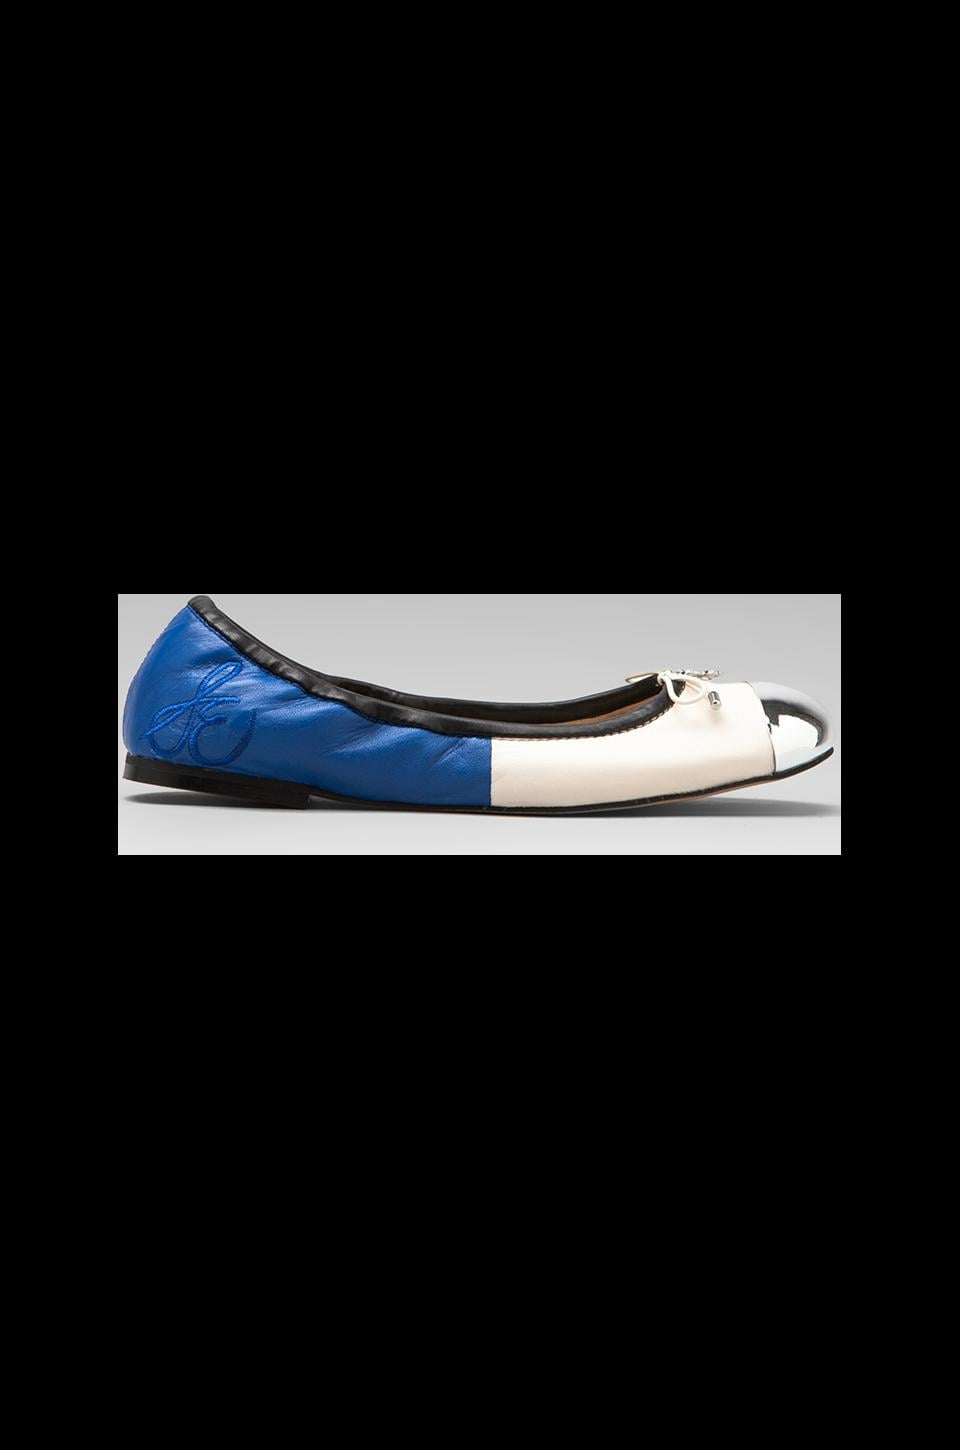 Sam Edelman Fairleigh Flat in Ice White/Bright Blue